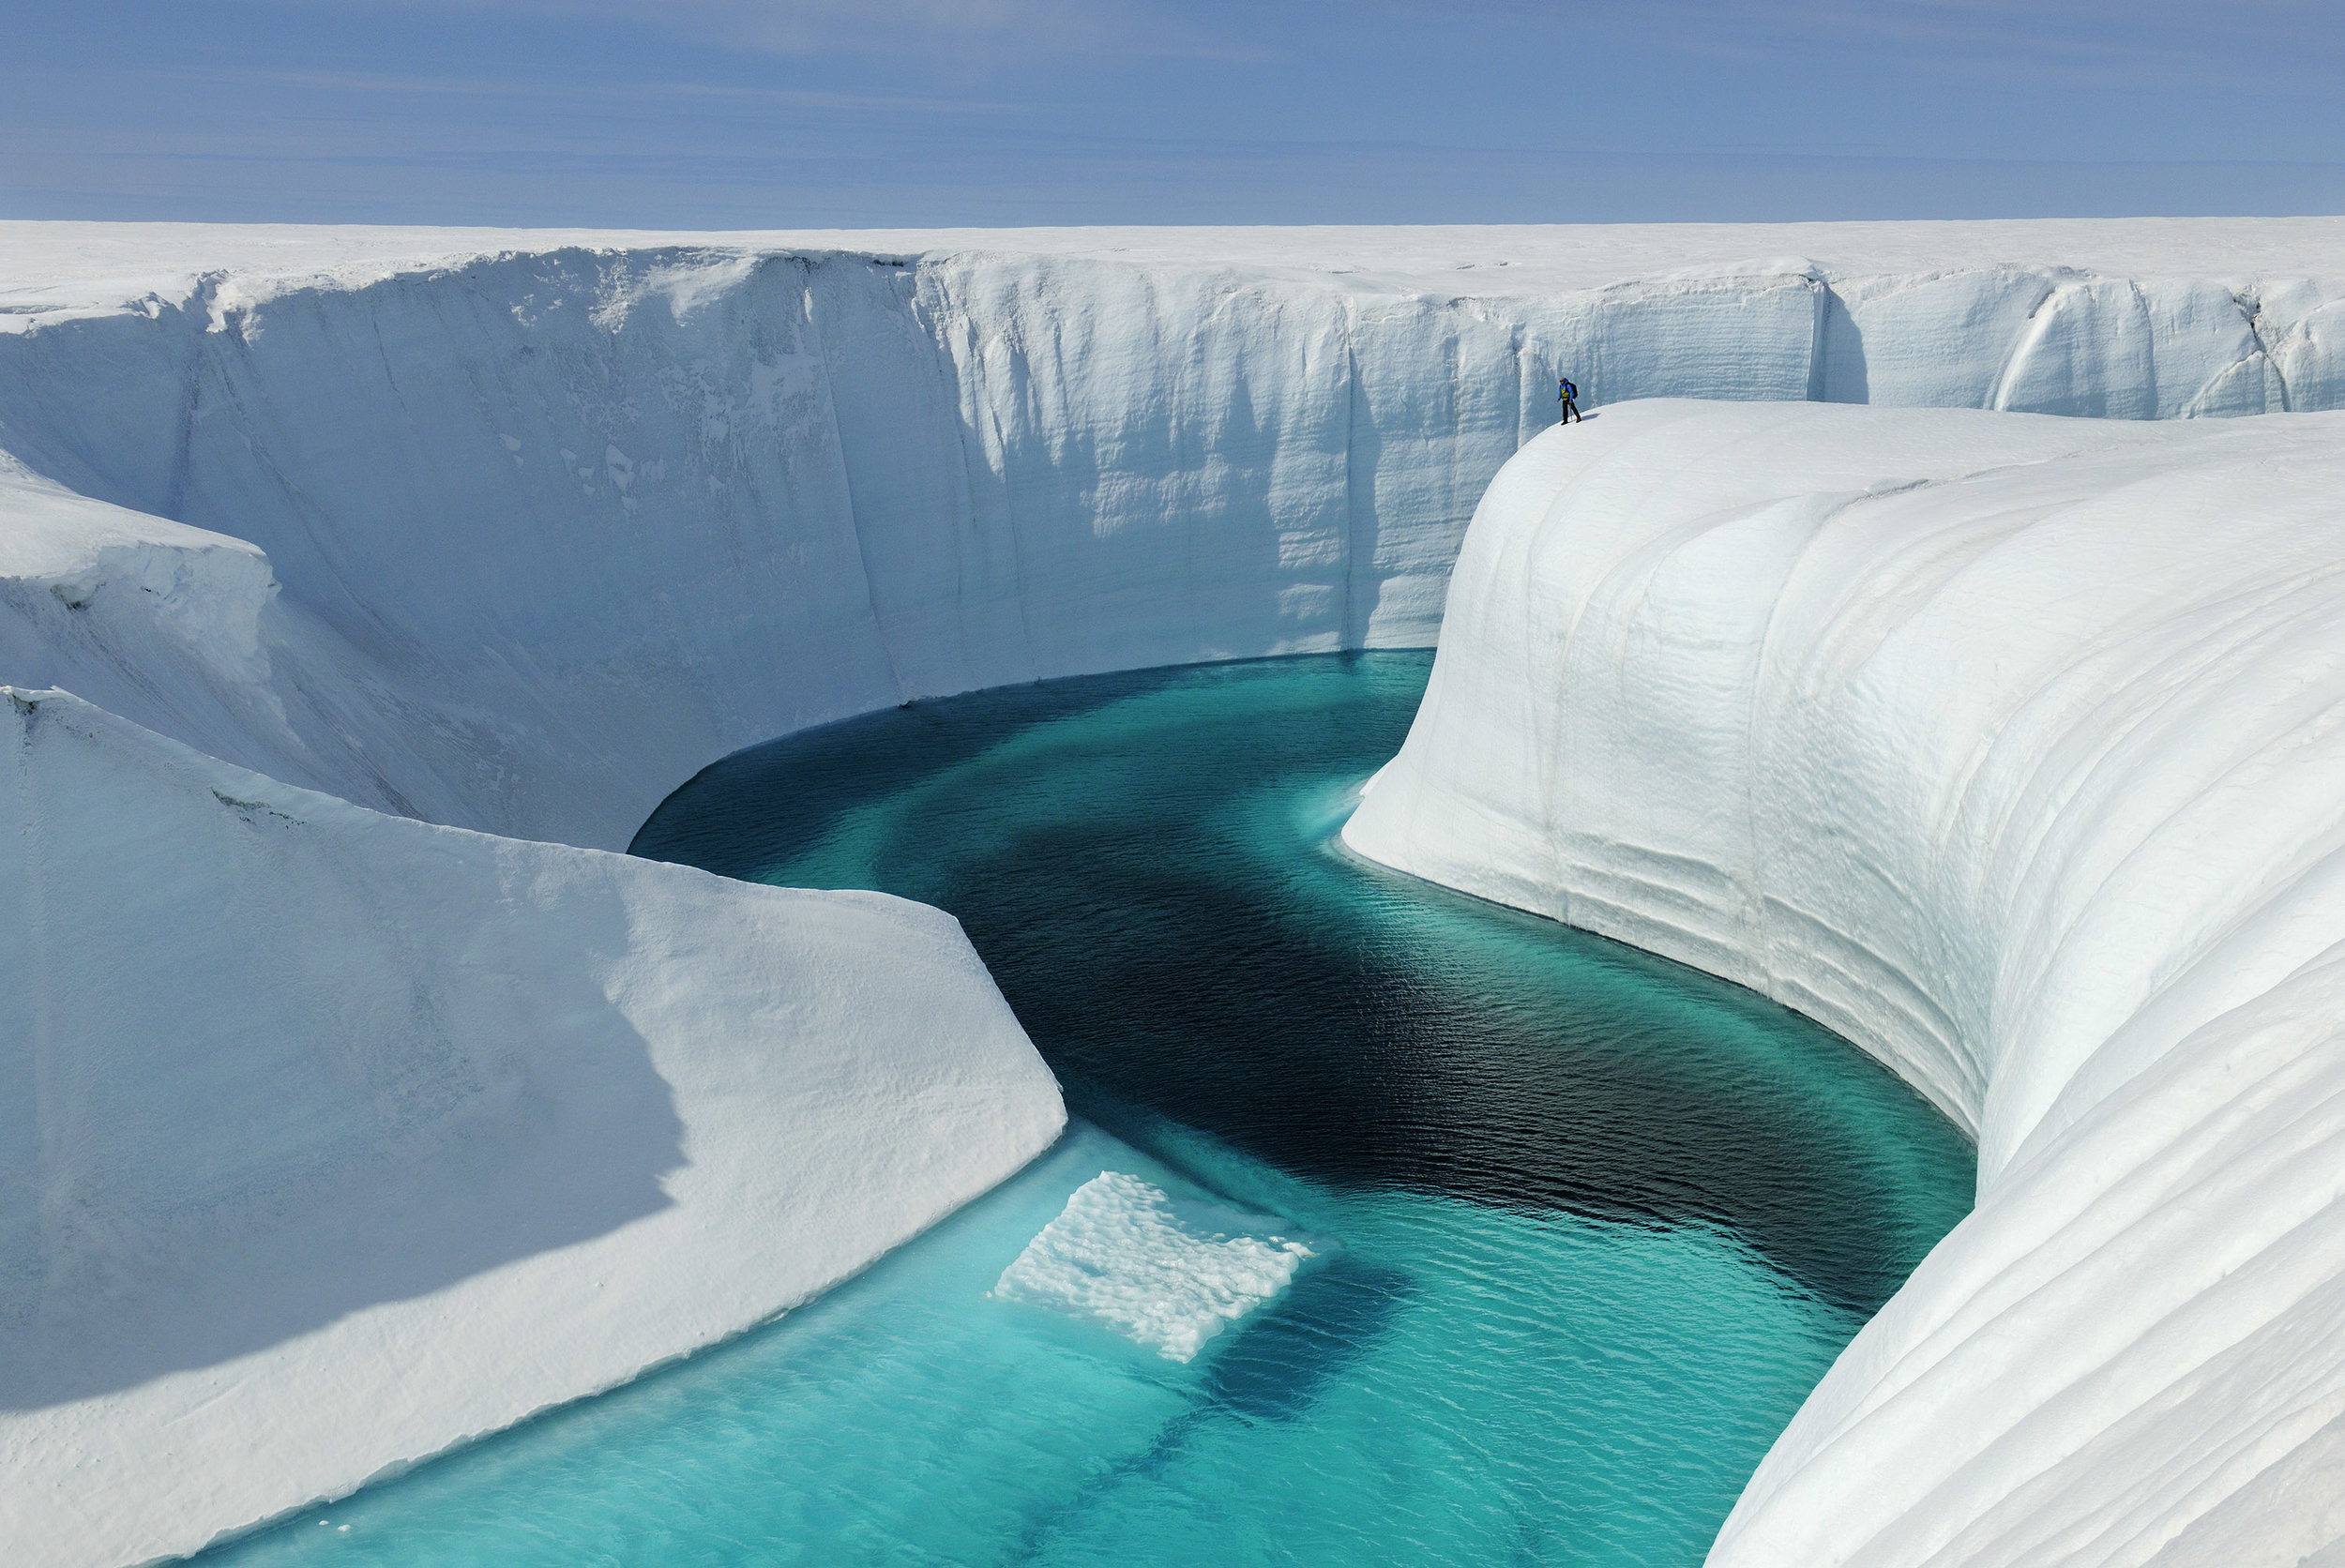 James Balog,  Greenland Ice Sheet, 28 June 2009, Adam LeWinter surveys Birthday Canyon,  2009, fotografia, 100 x 140 cm, courtesy James Balog, Earth Vision Institute